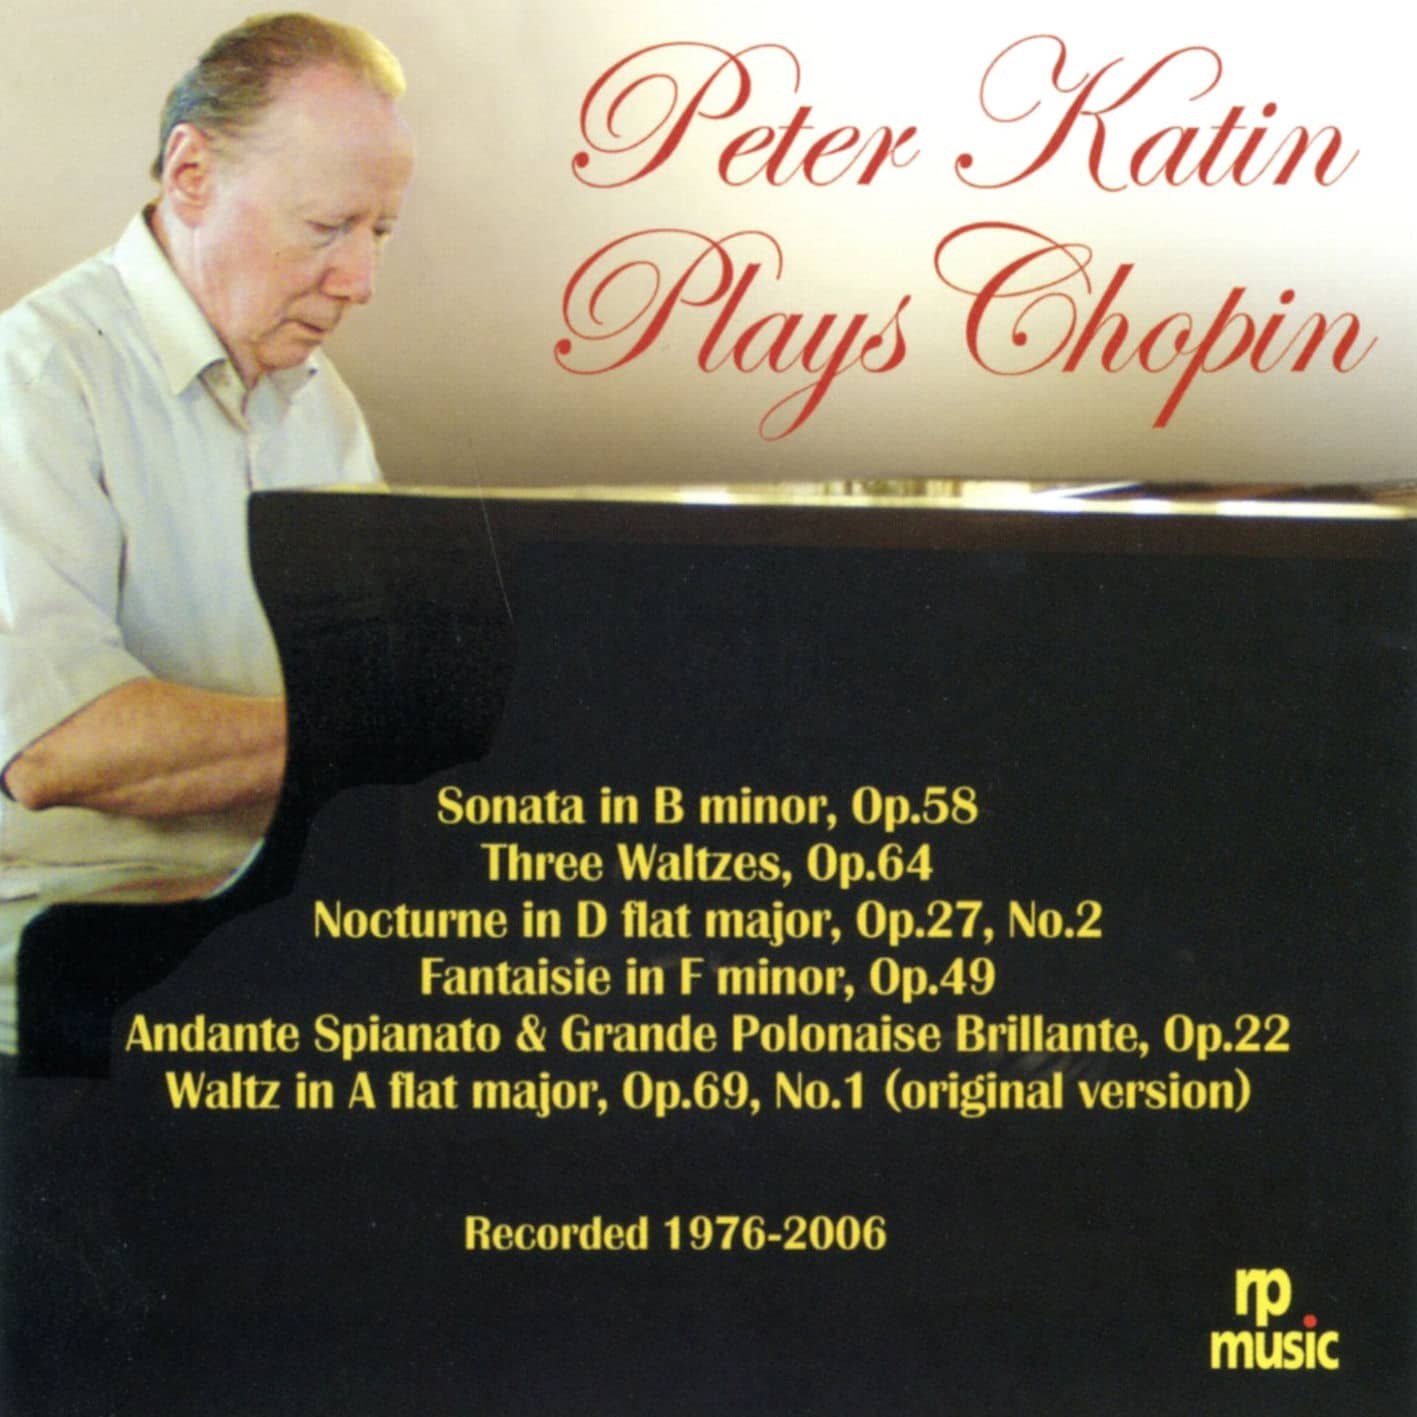 Peter Katin plays Chopin